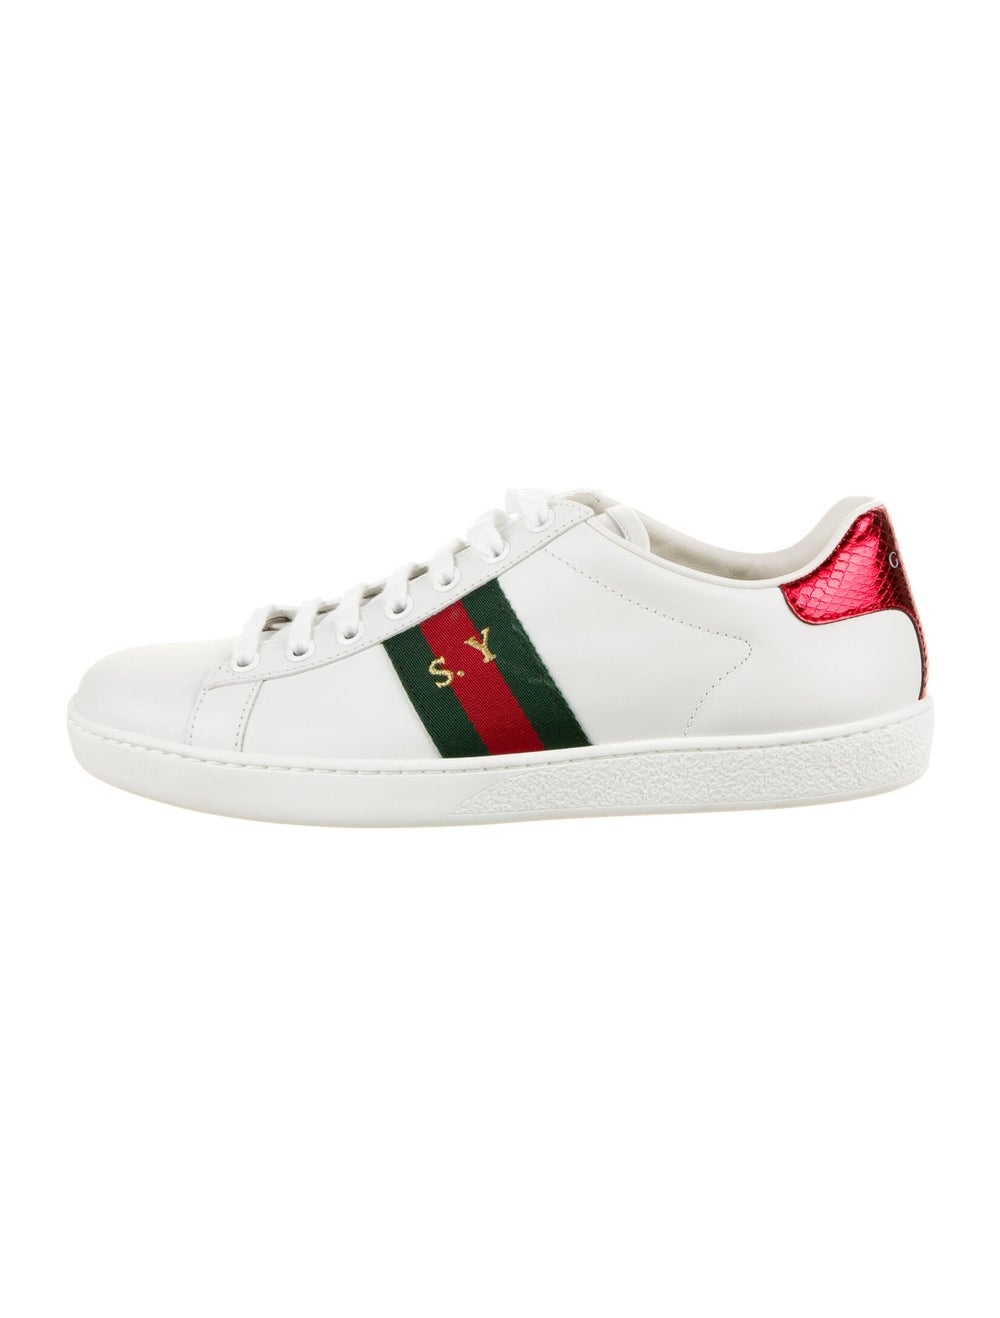 Gucci Web Accent Leather Sneakers White - image 1